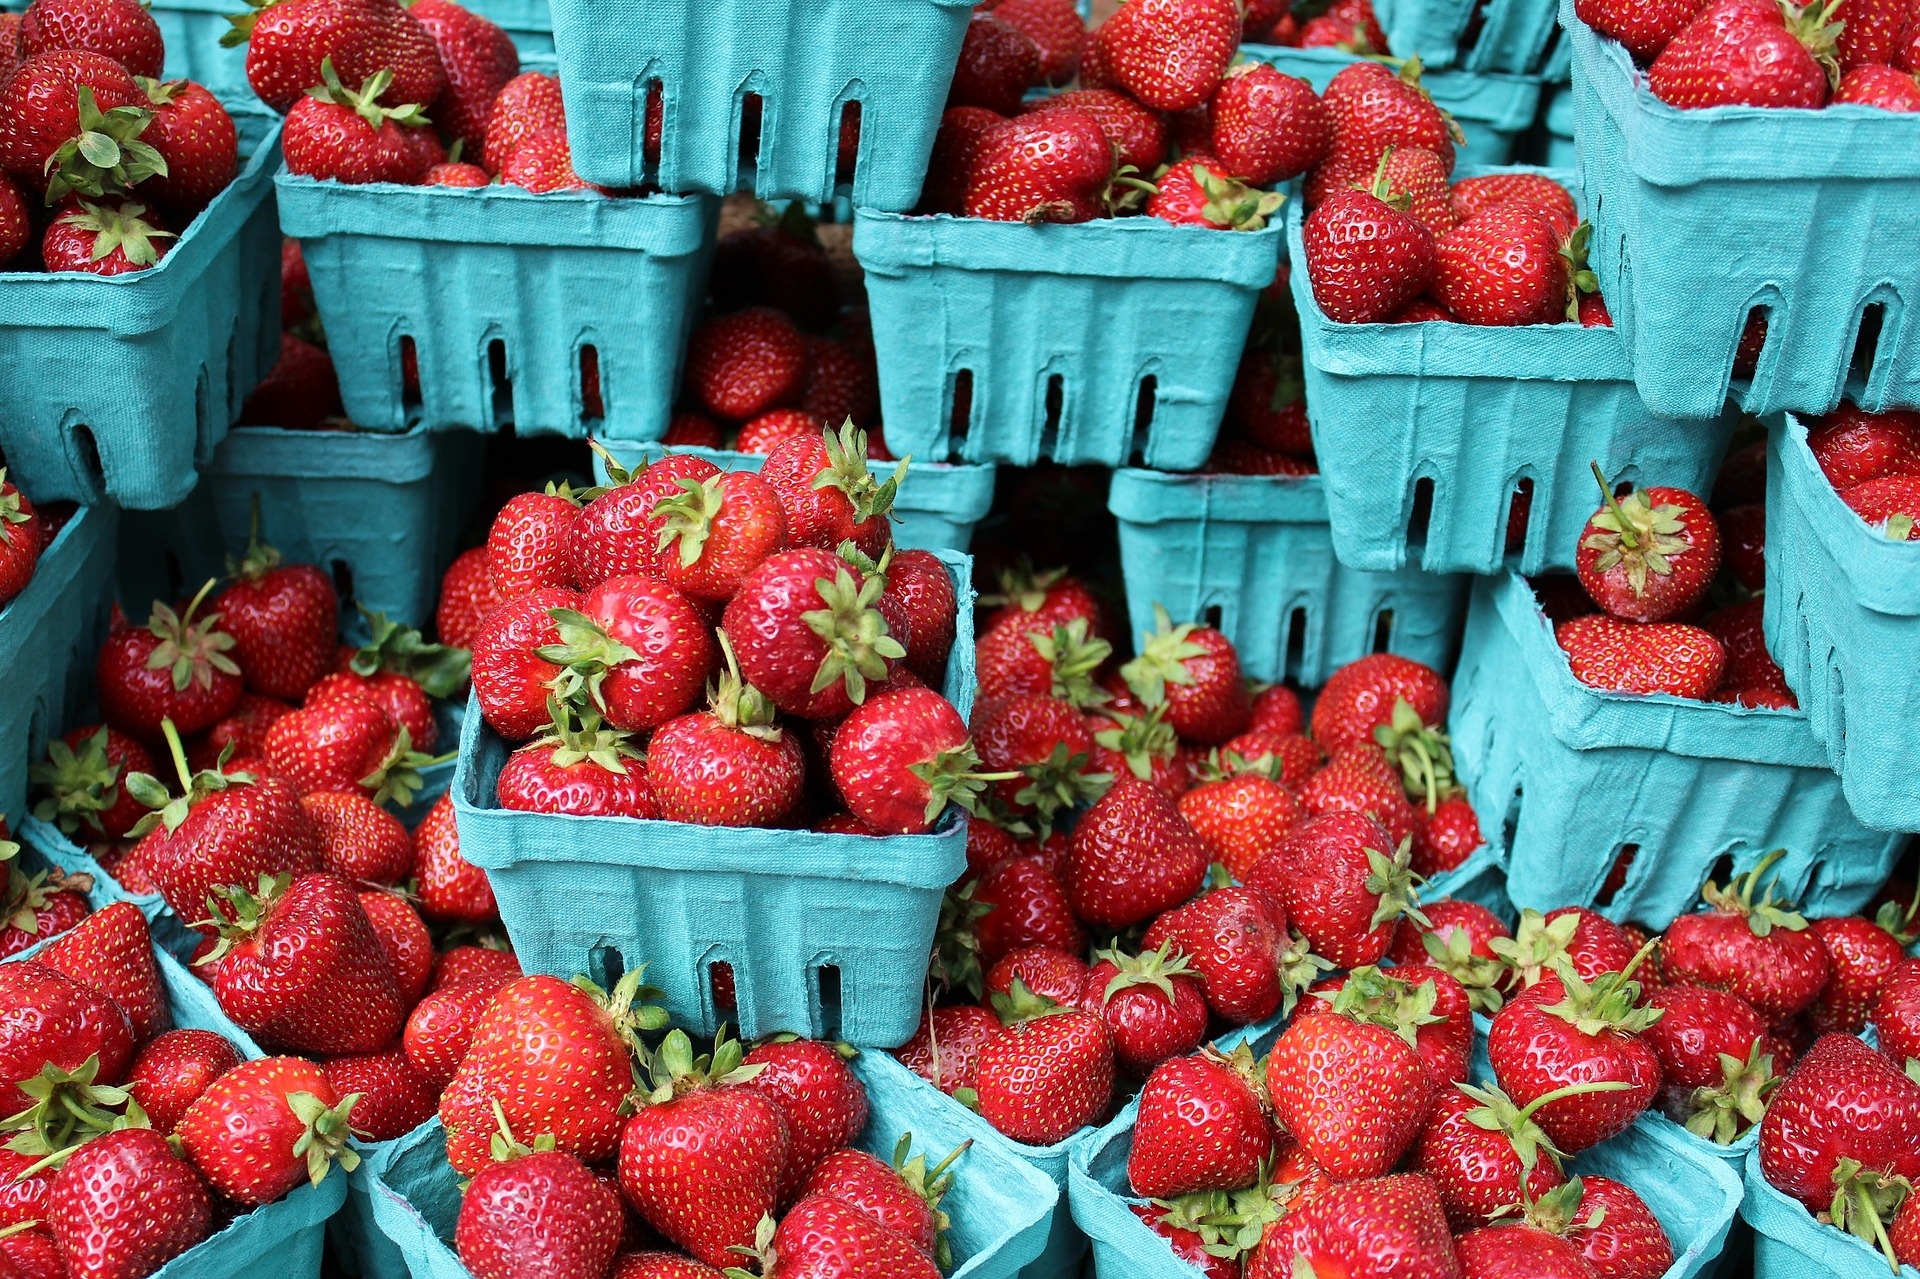 Picture of strawberries in pint containers to sell.